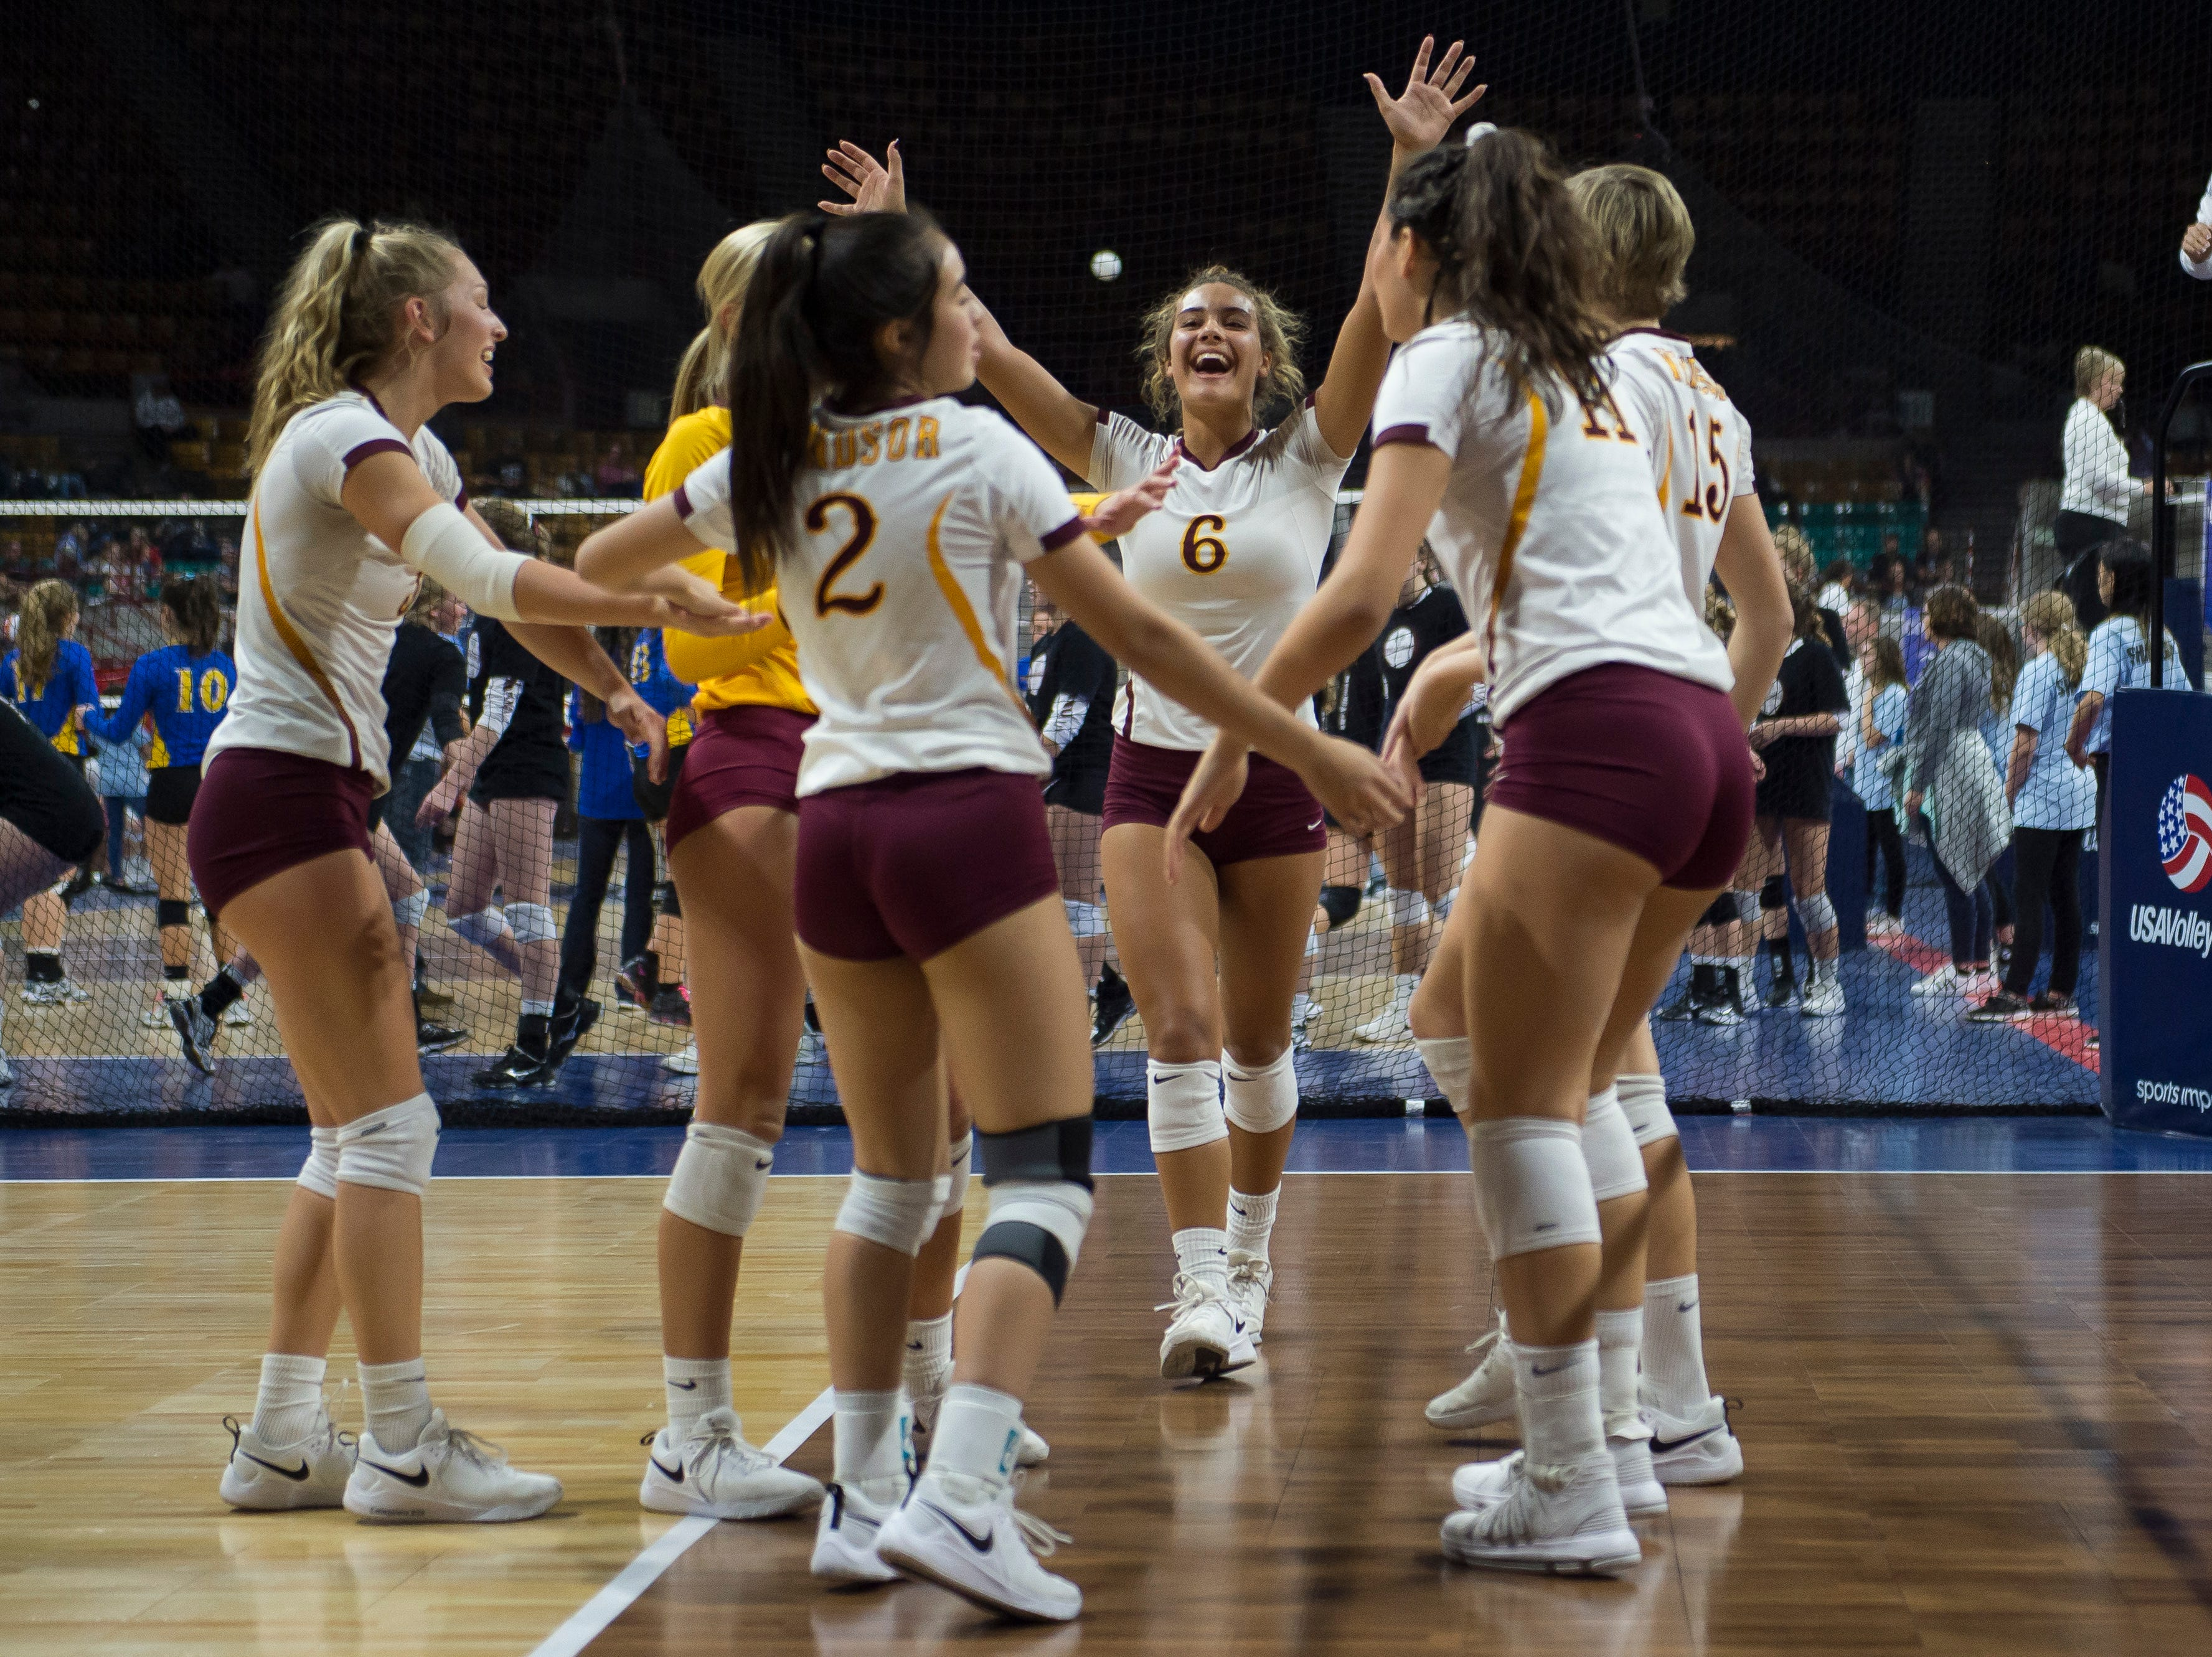 Windsor High School senior Ally Kennis (6) celebrate s appoint with er teammates during a state first round game against Fossil Ridge High School on Thursday, Nov. 8, 2018, at the Denver Coliseum in Denver, Colo.